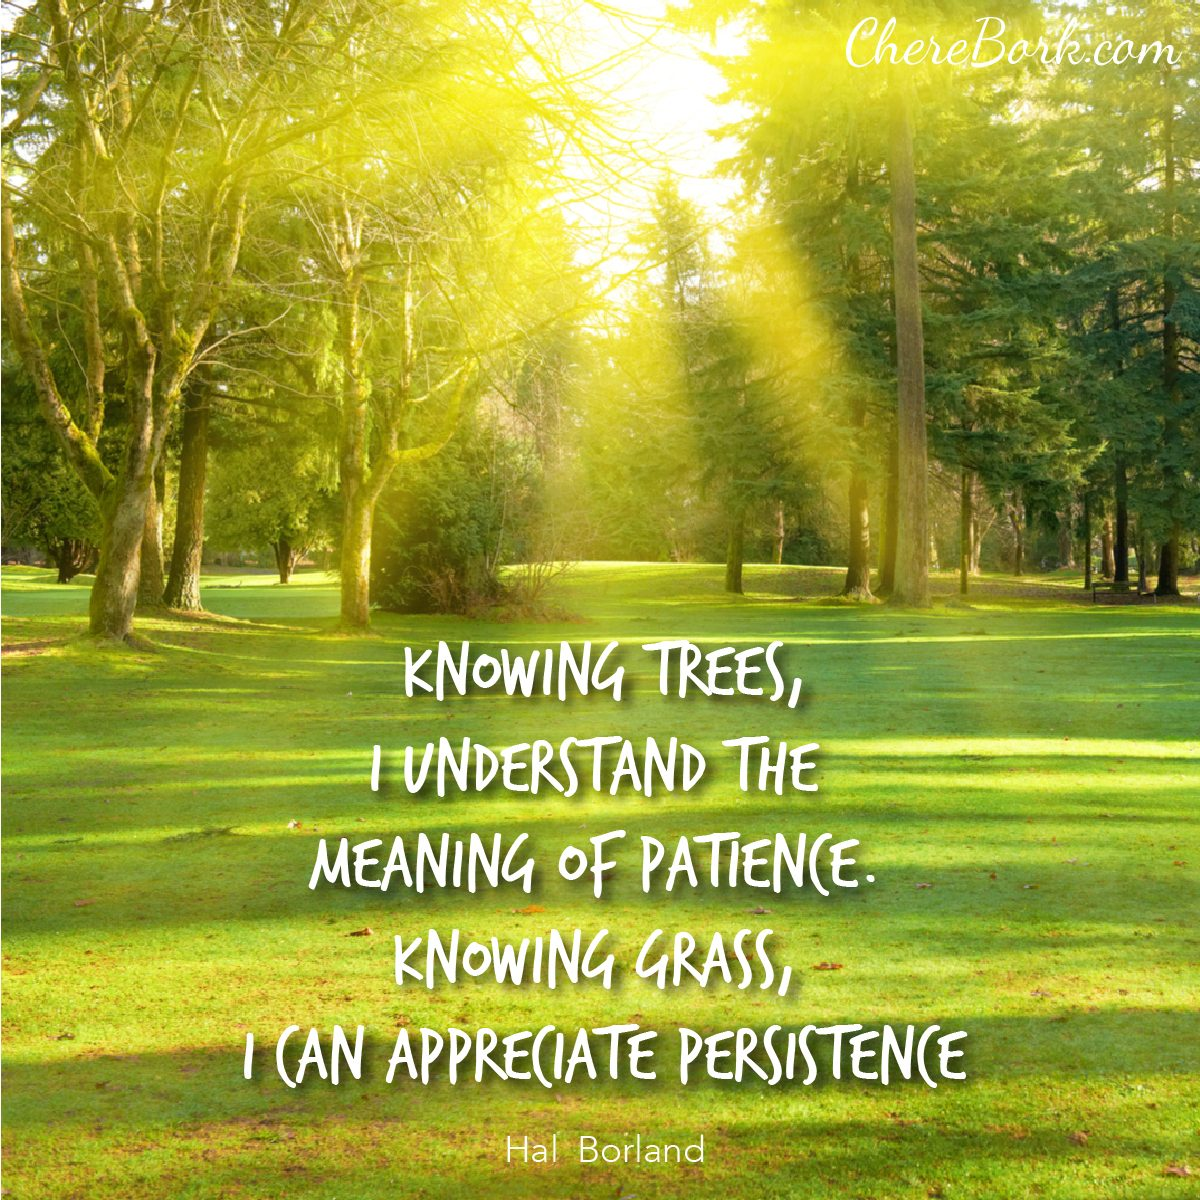 Knowing trees, I understand the meaning of patience. Knowing grass, I can appreciate persistence. -Hal Borland